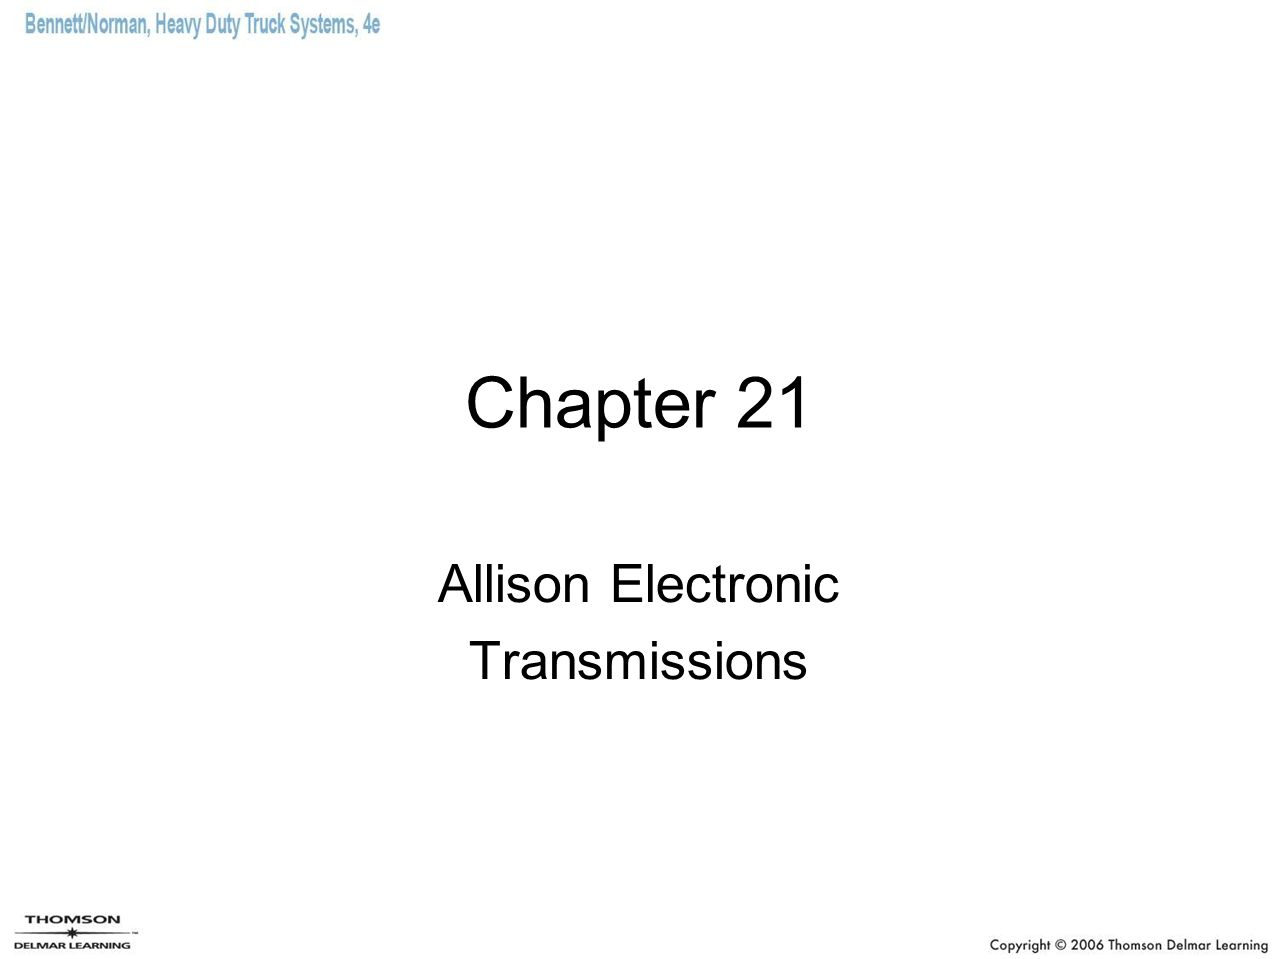 Allison Electronic Transmissions - ppt download